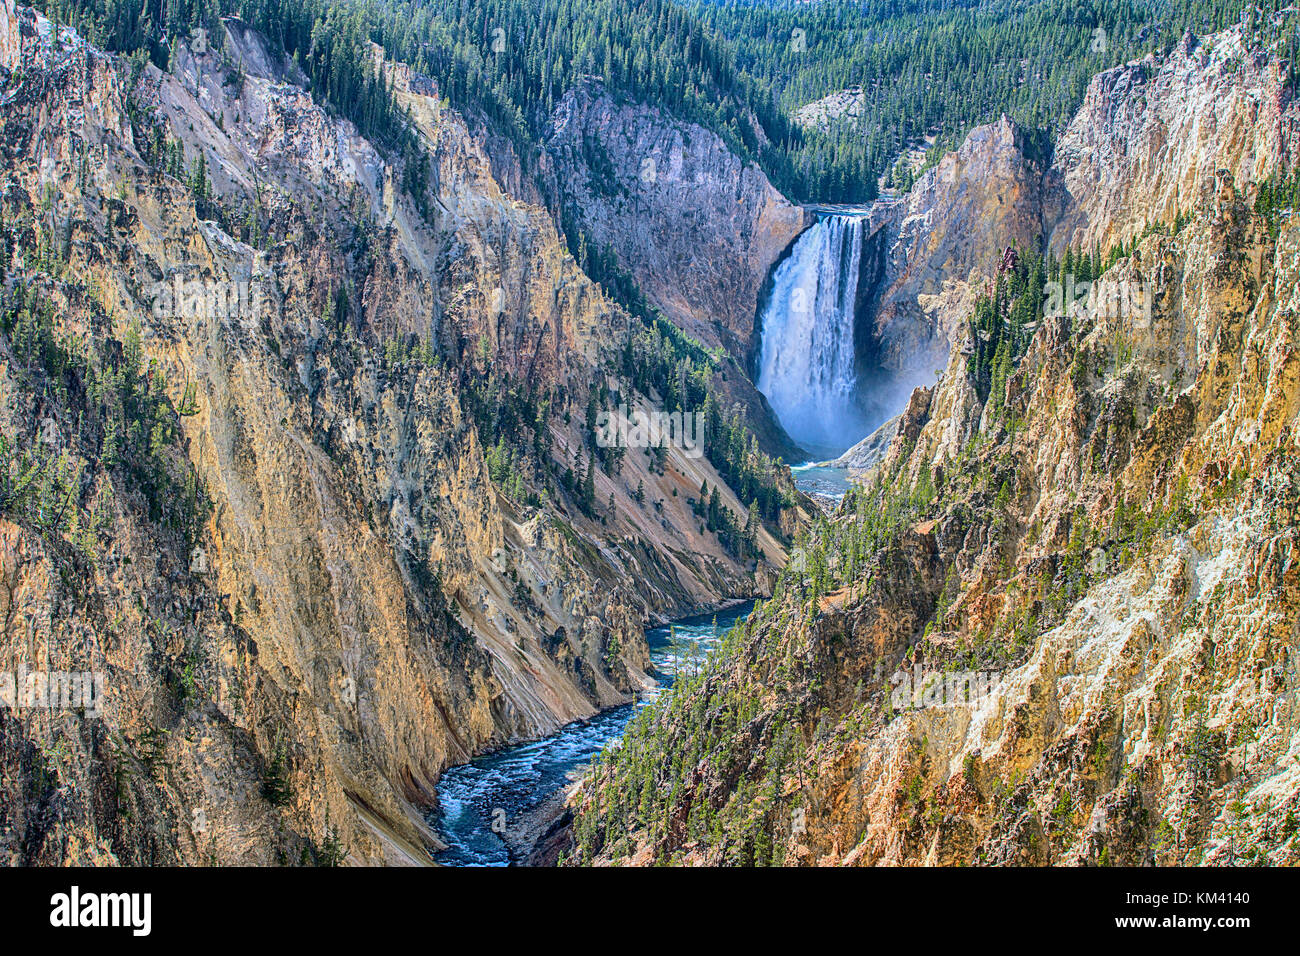 Yellowstone Canyon Lower Falls on the Yellowstone river viewed from 'Artist Point', Wyoming, USA - Stock Image